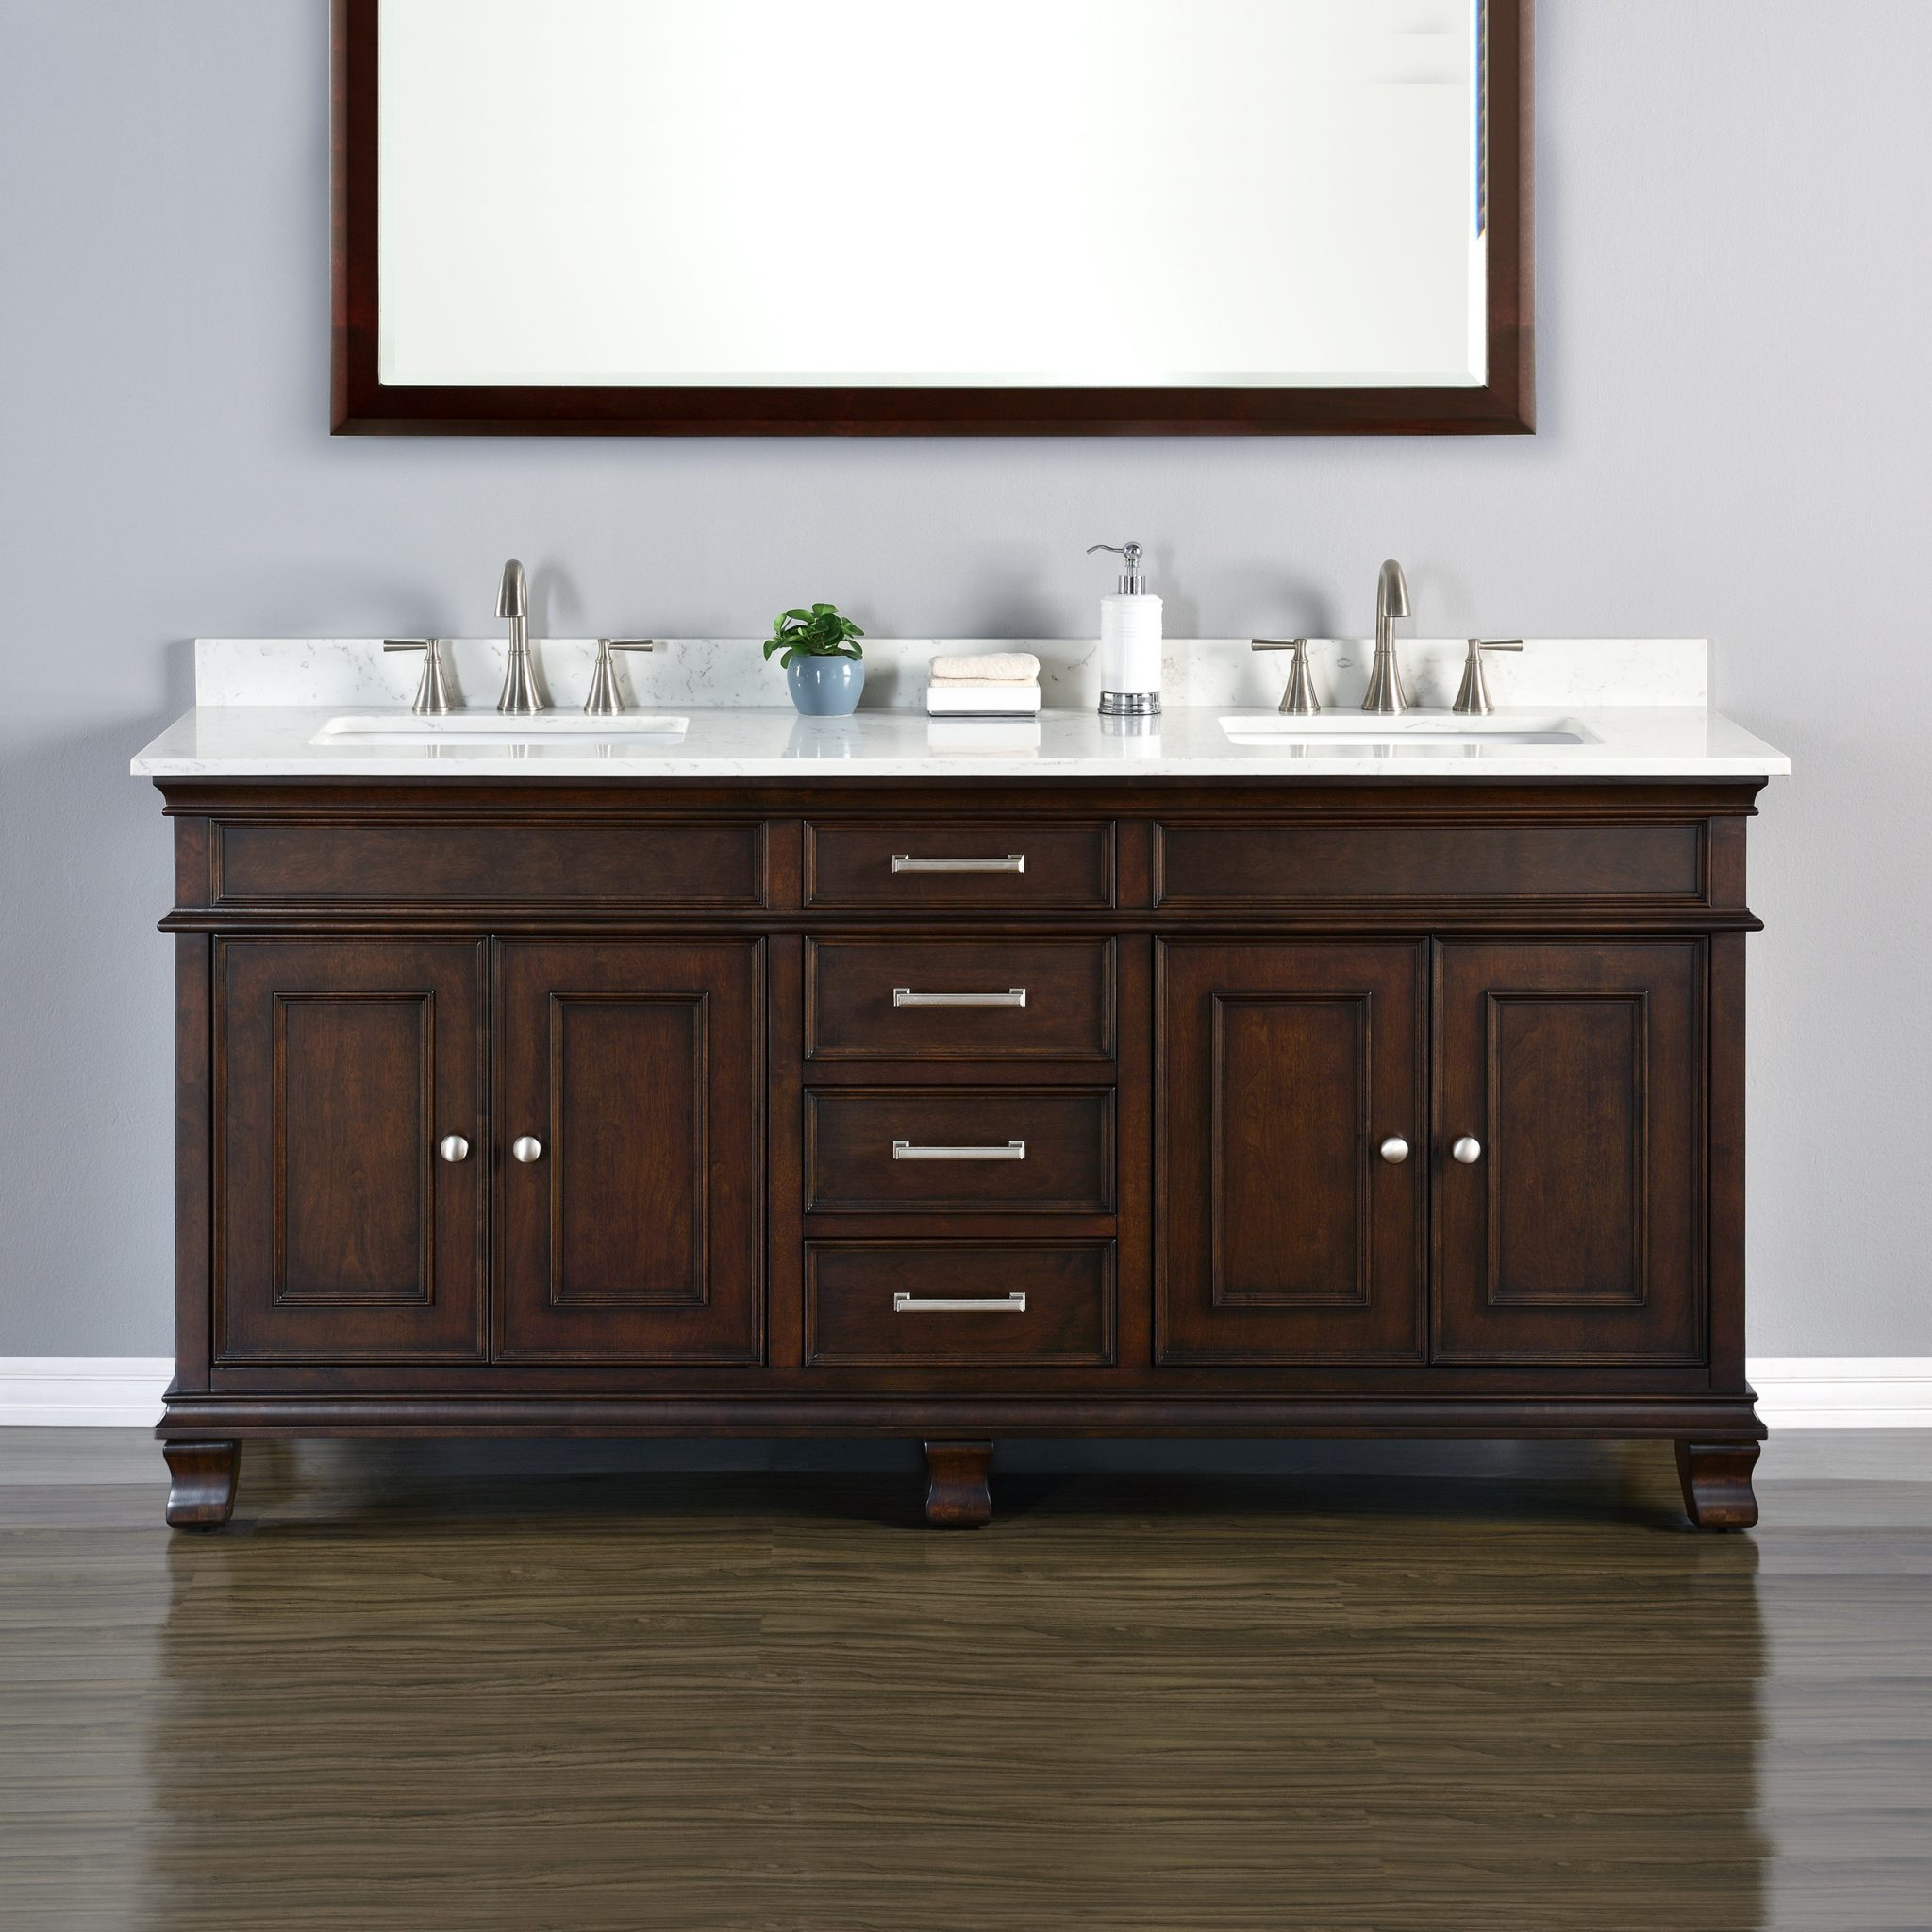 unique of trough bathroom single double vanity sink inspirational alluring